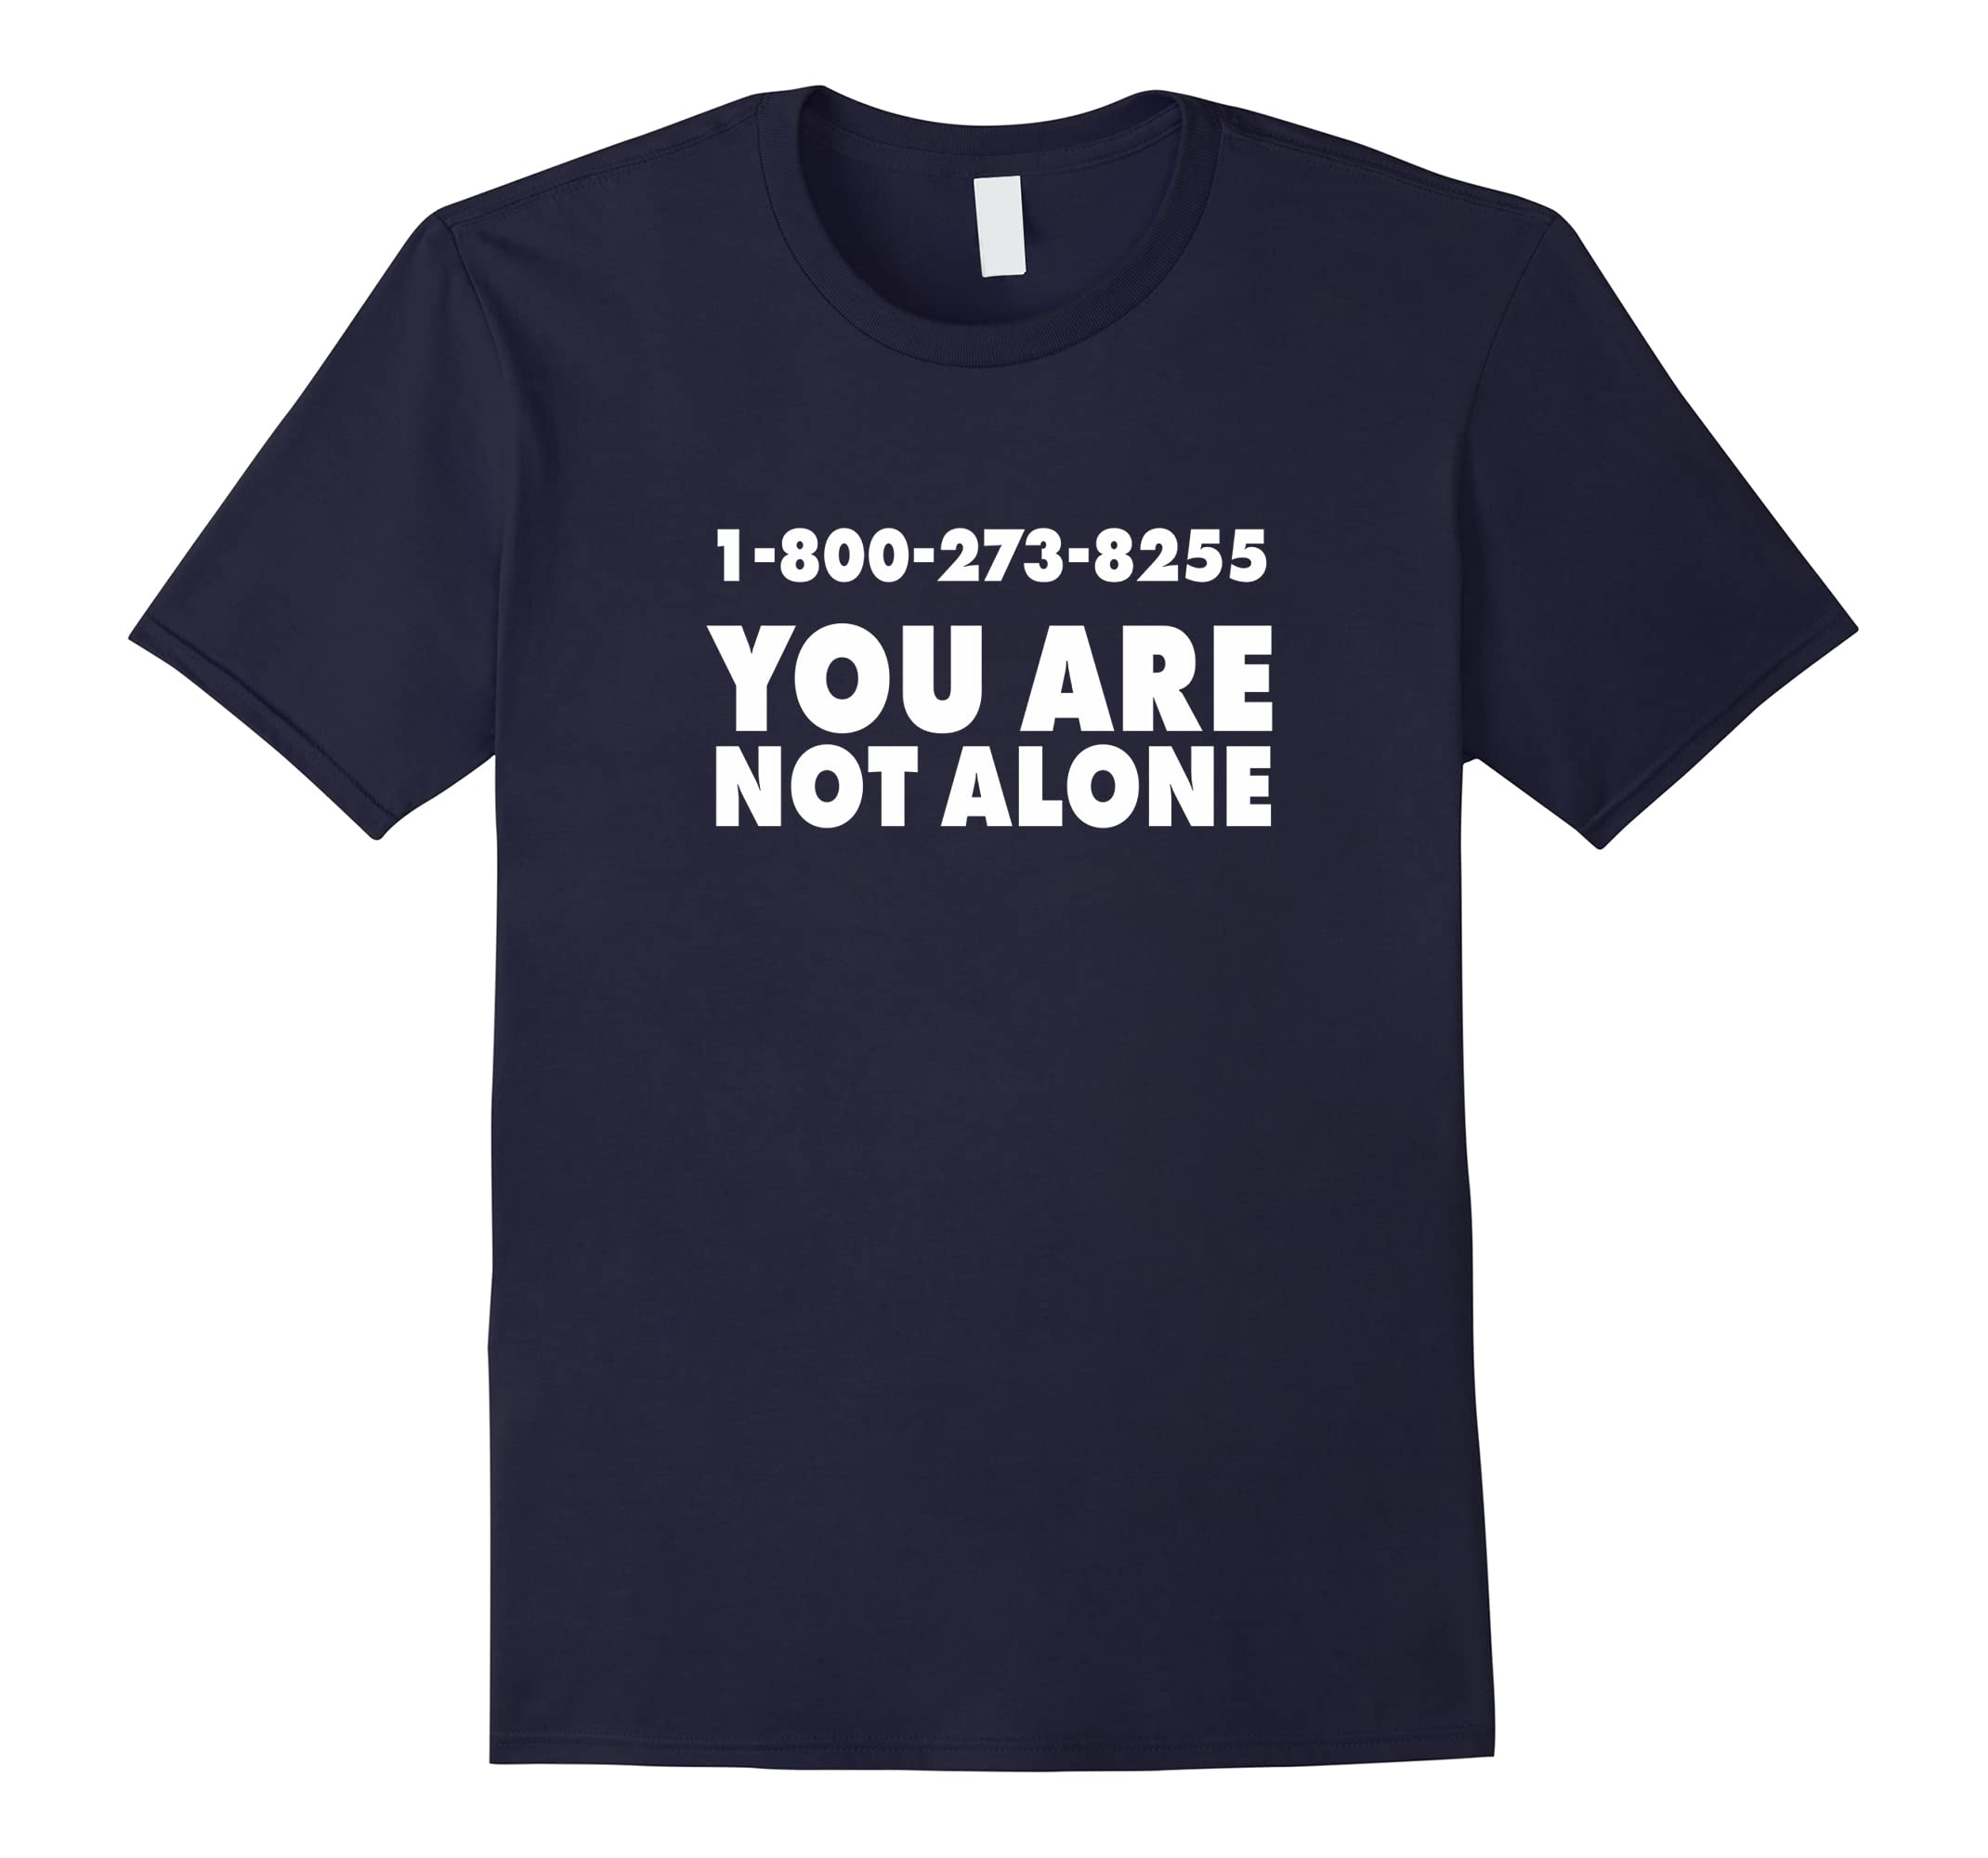 1-800-273-8255 You are not Alone Graphic T Shirt-ah my shirt one gift